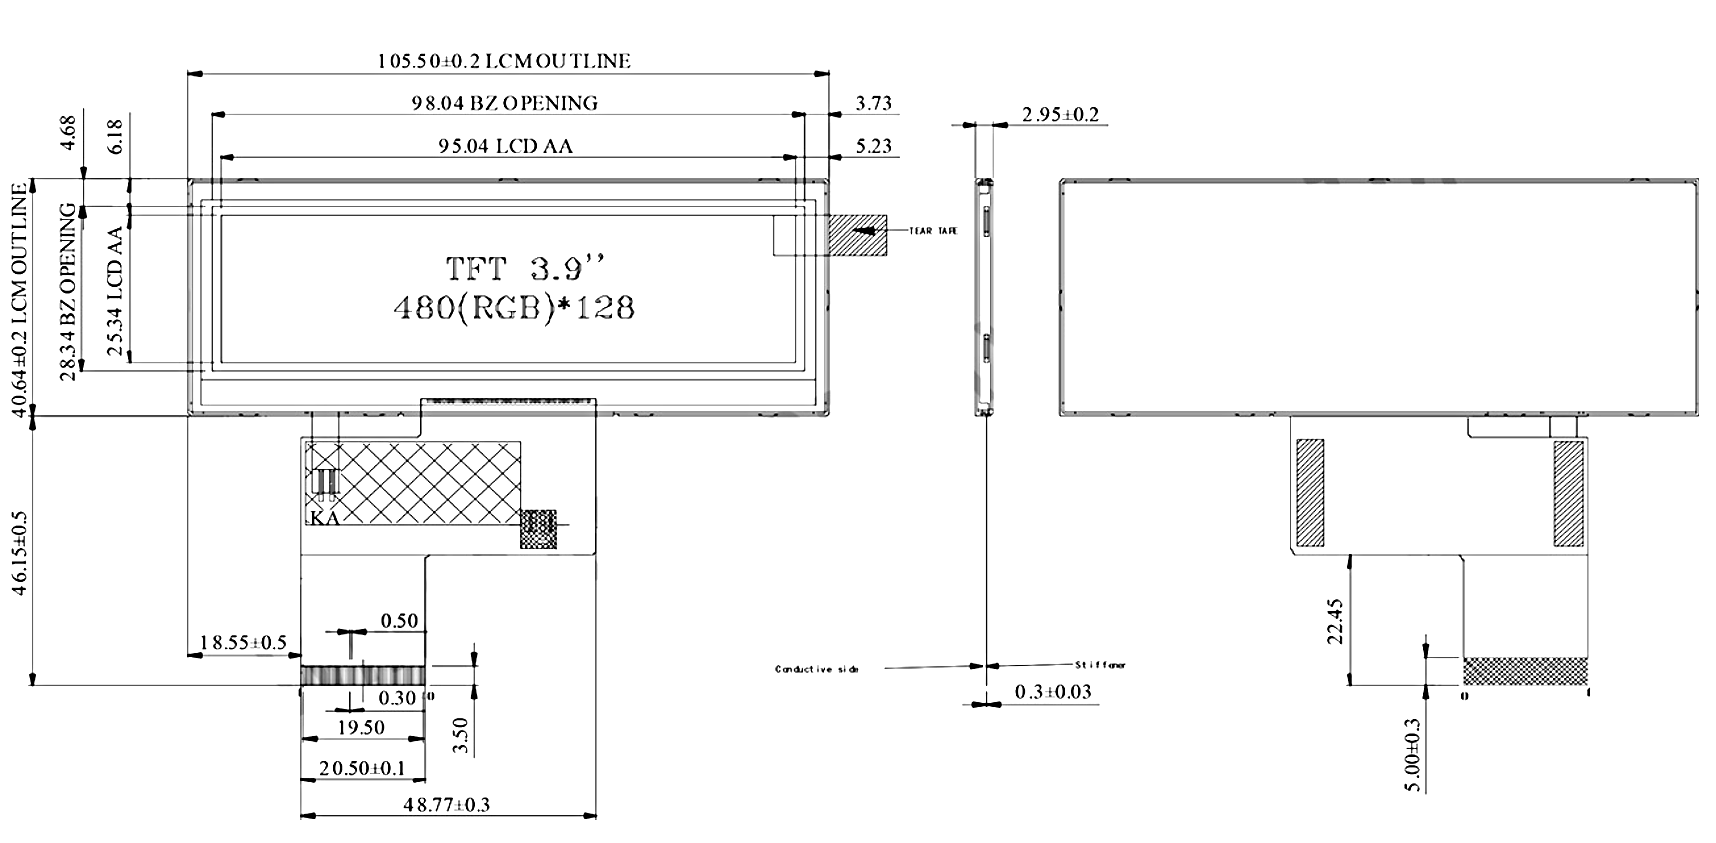 WF39ATIASDNN0# - LCD-TFT display from Winstar Co  (3 9 inches, 480x128, no  controller)